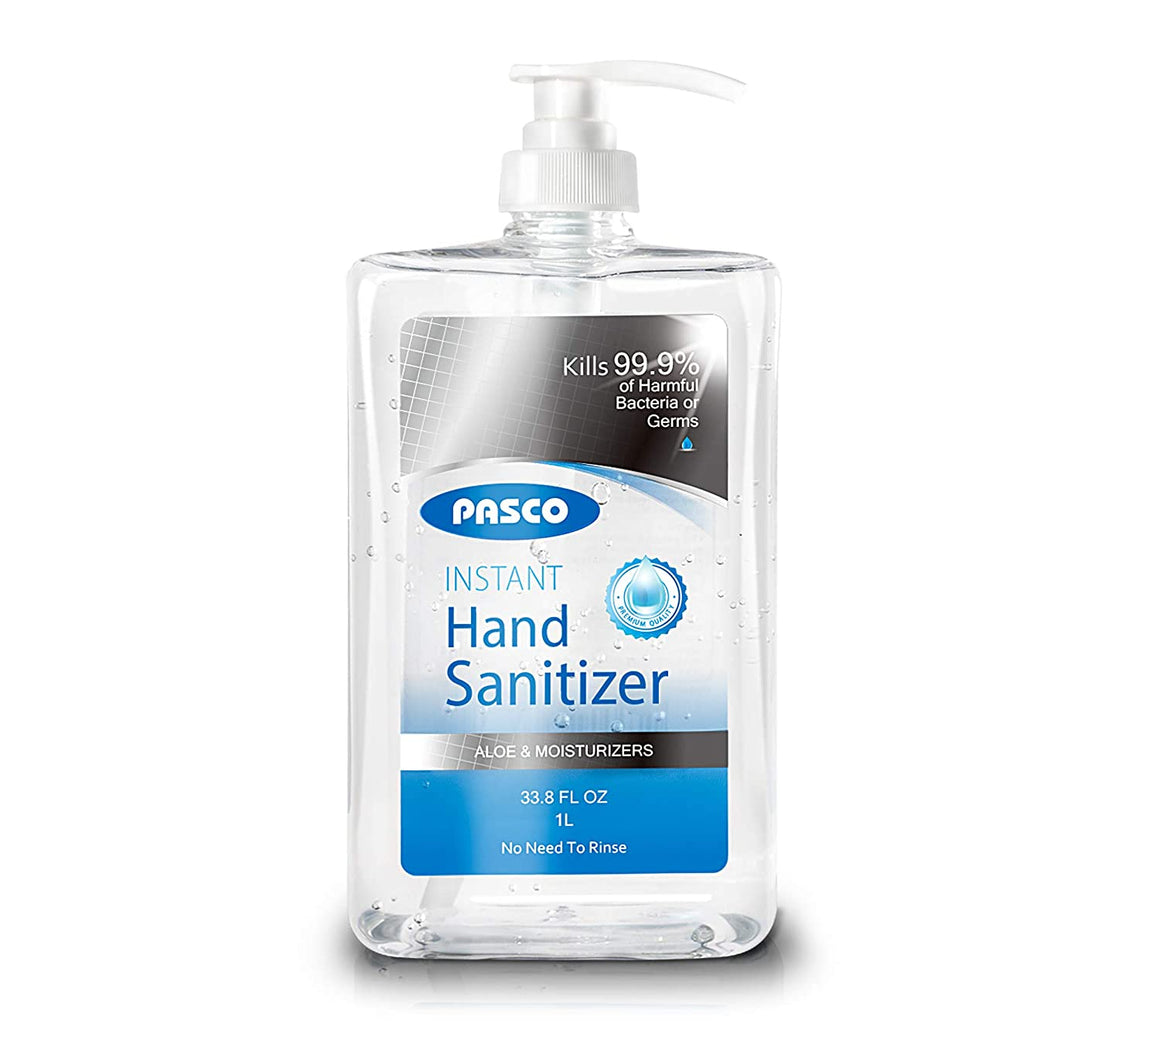 PASCO 70% Alcohol Hand Sanitizer w/ Aloe & Moisturizers (33.8 fl. oz)